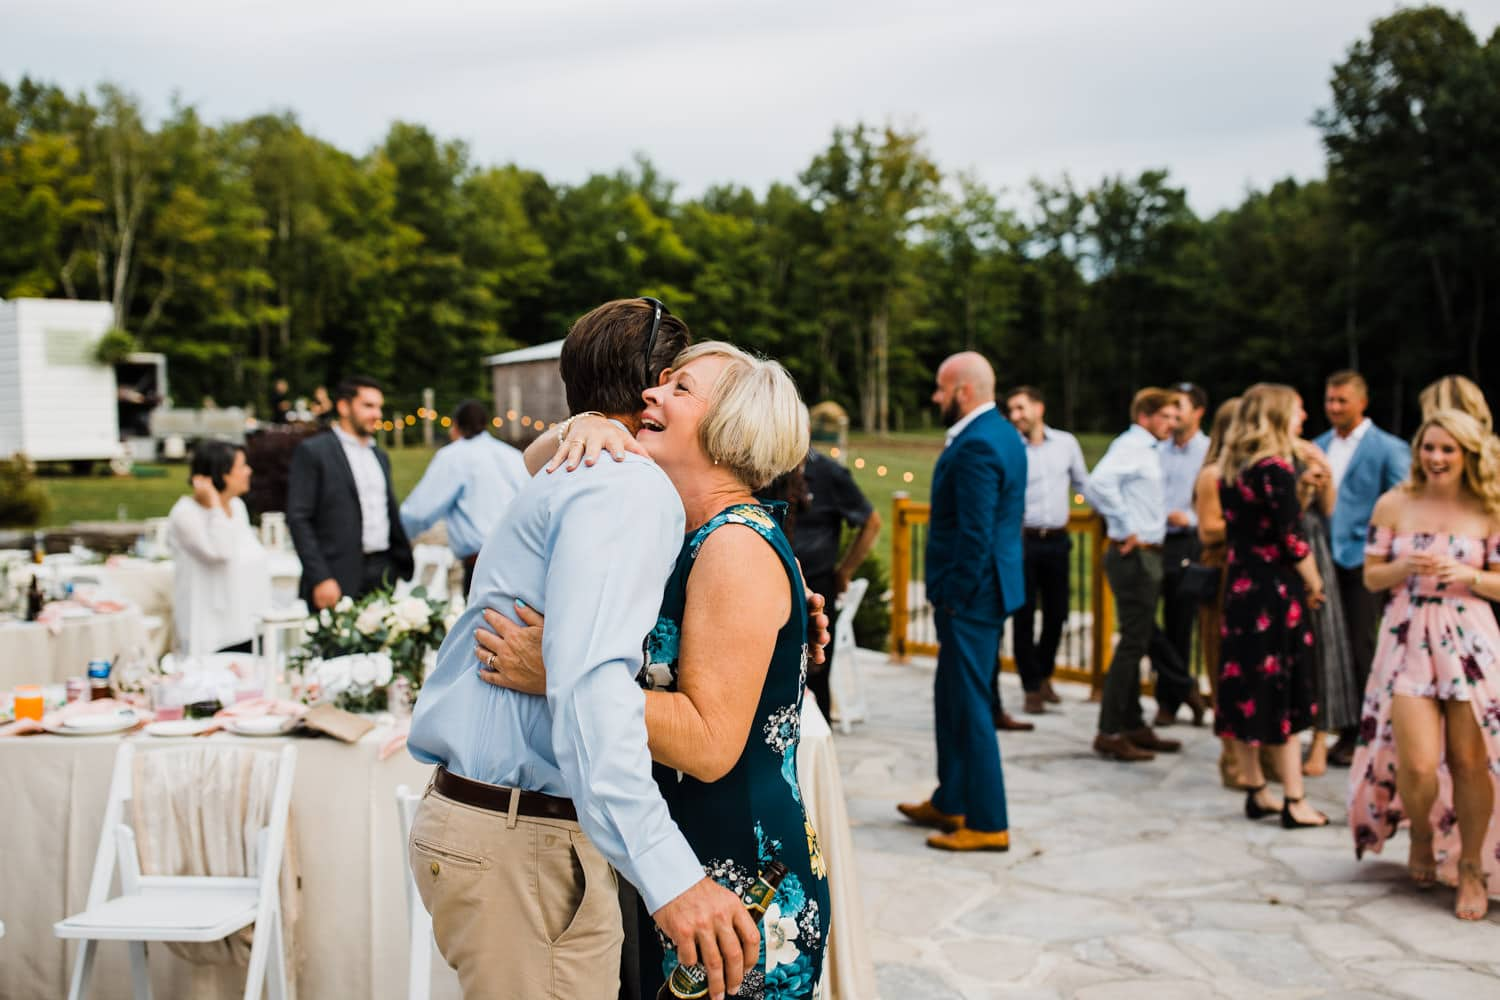 guests hug and react after outdoor wedding ceremony